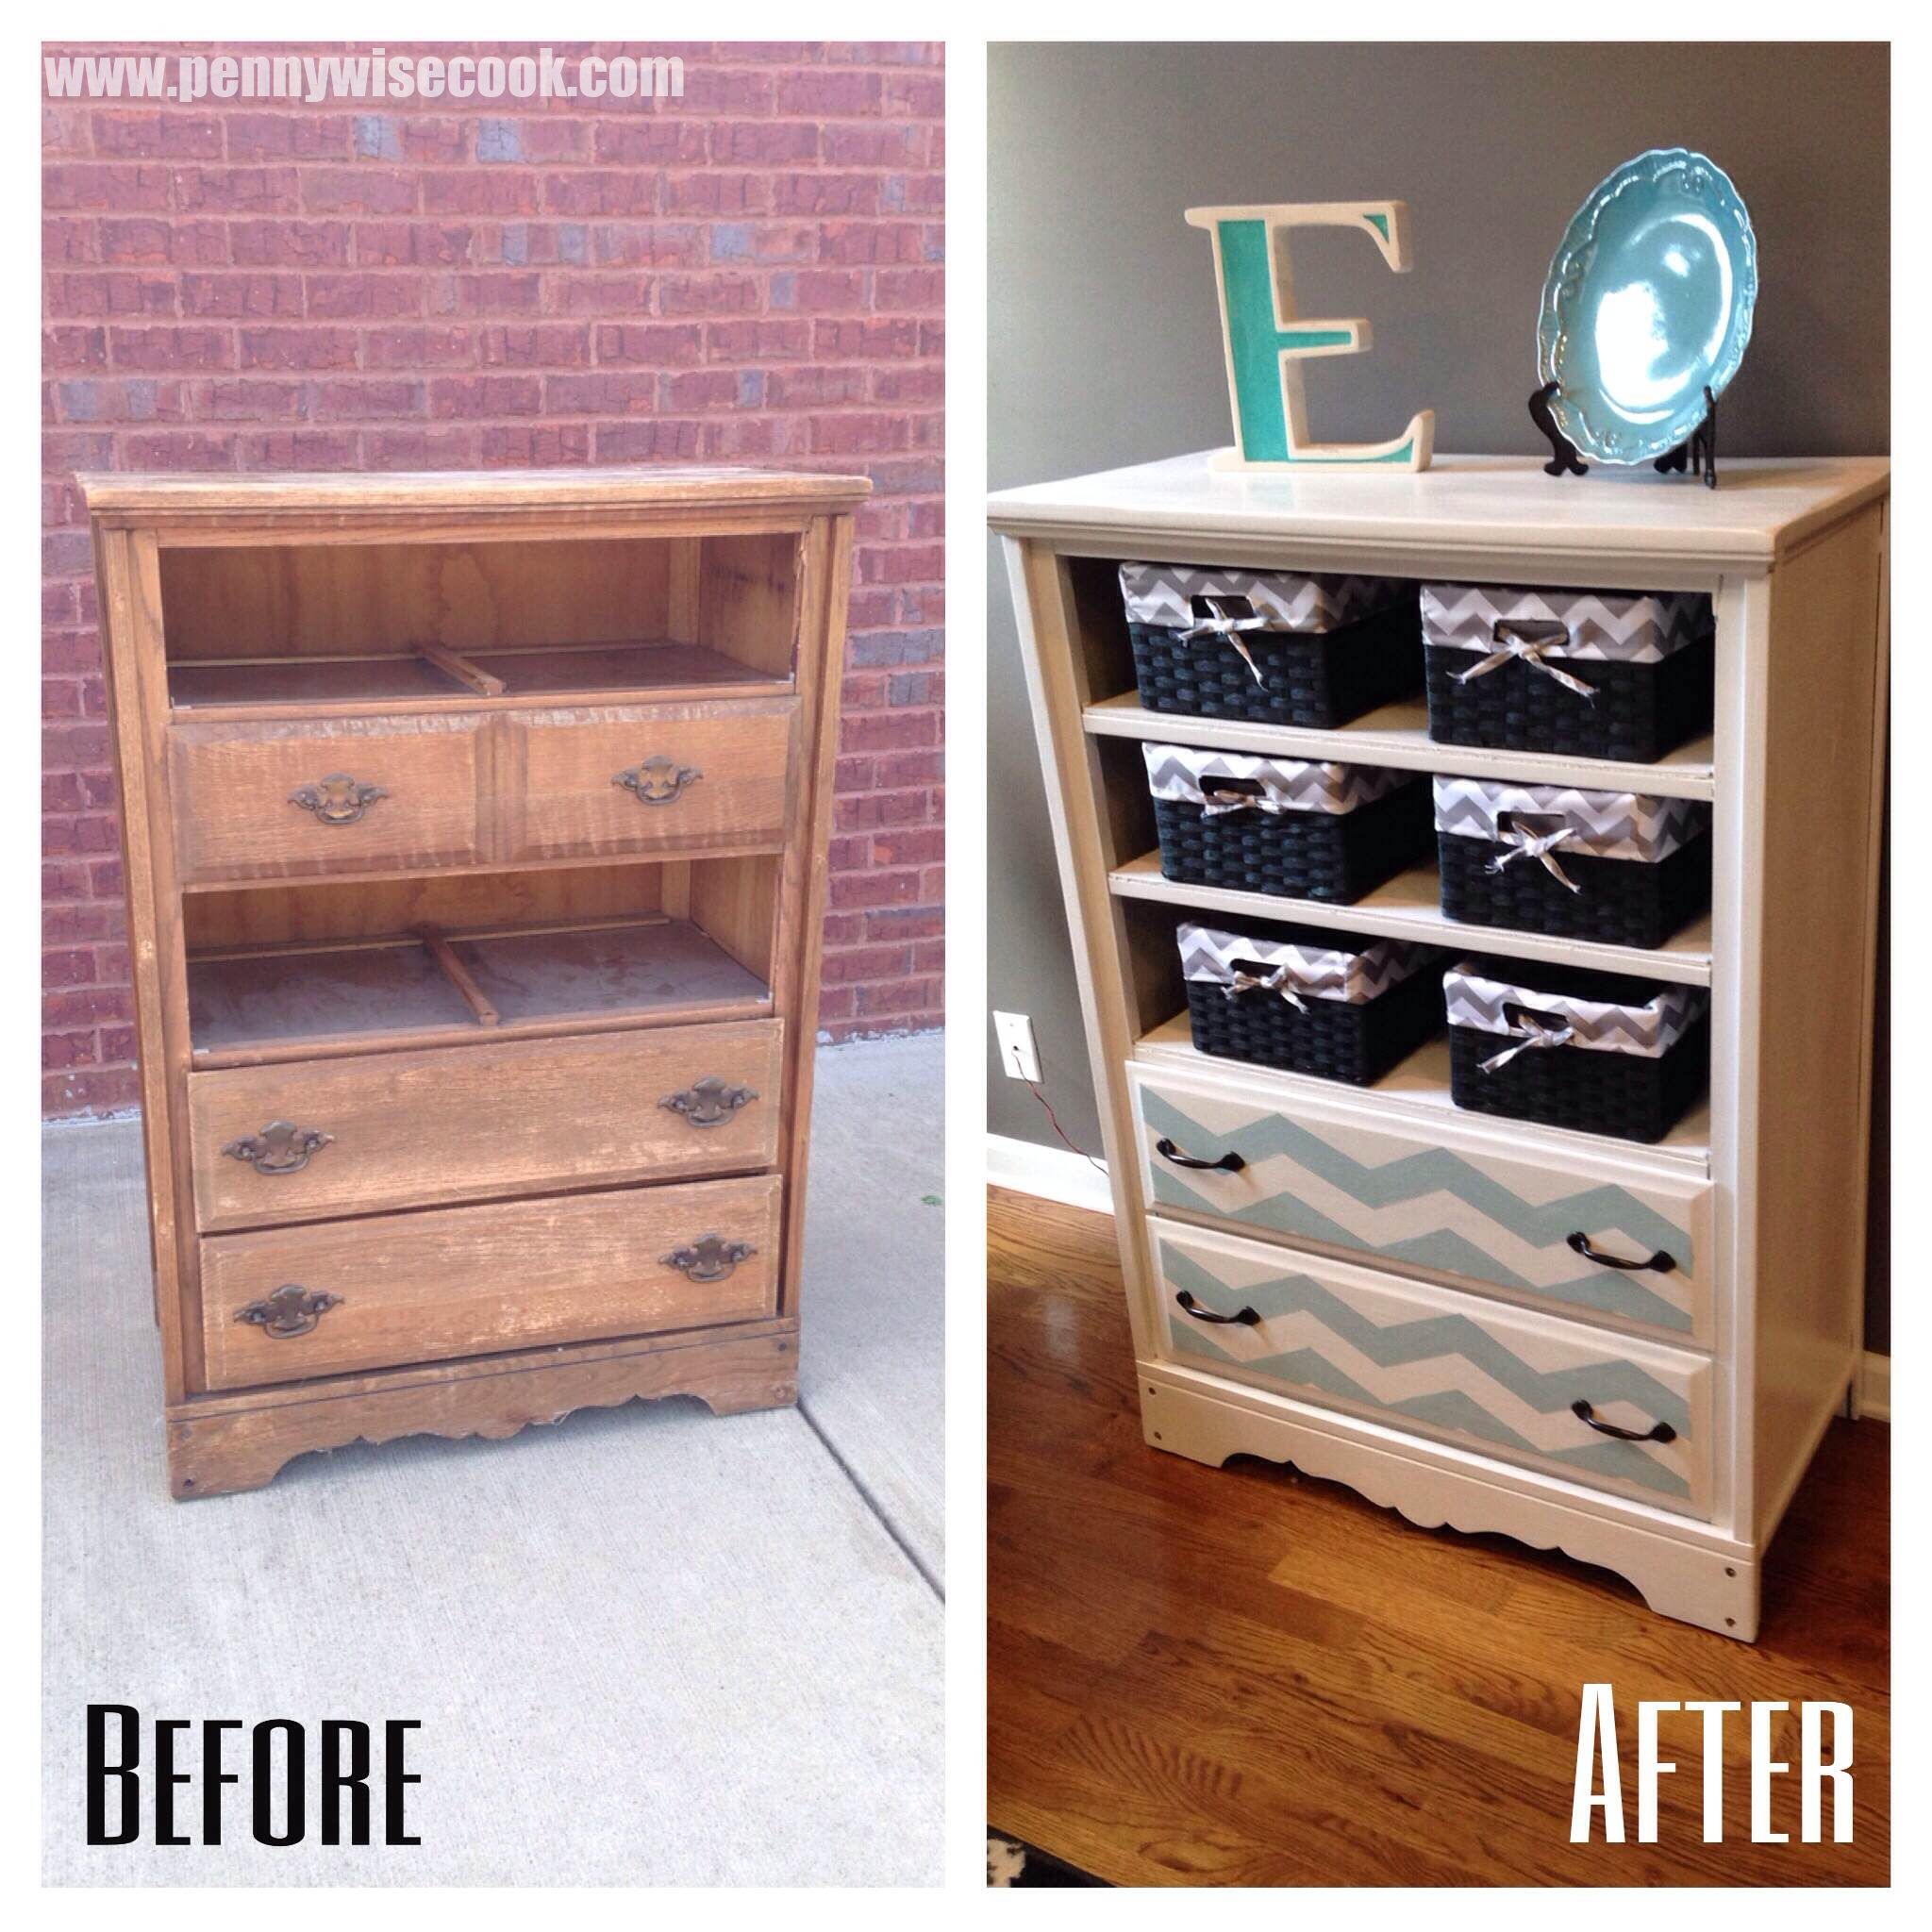 Diy dresser to storage pennywise cook for Diy ideas for old dressers